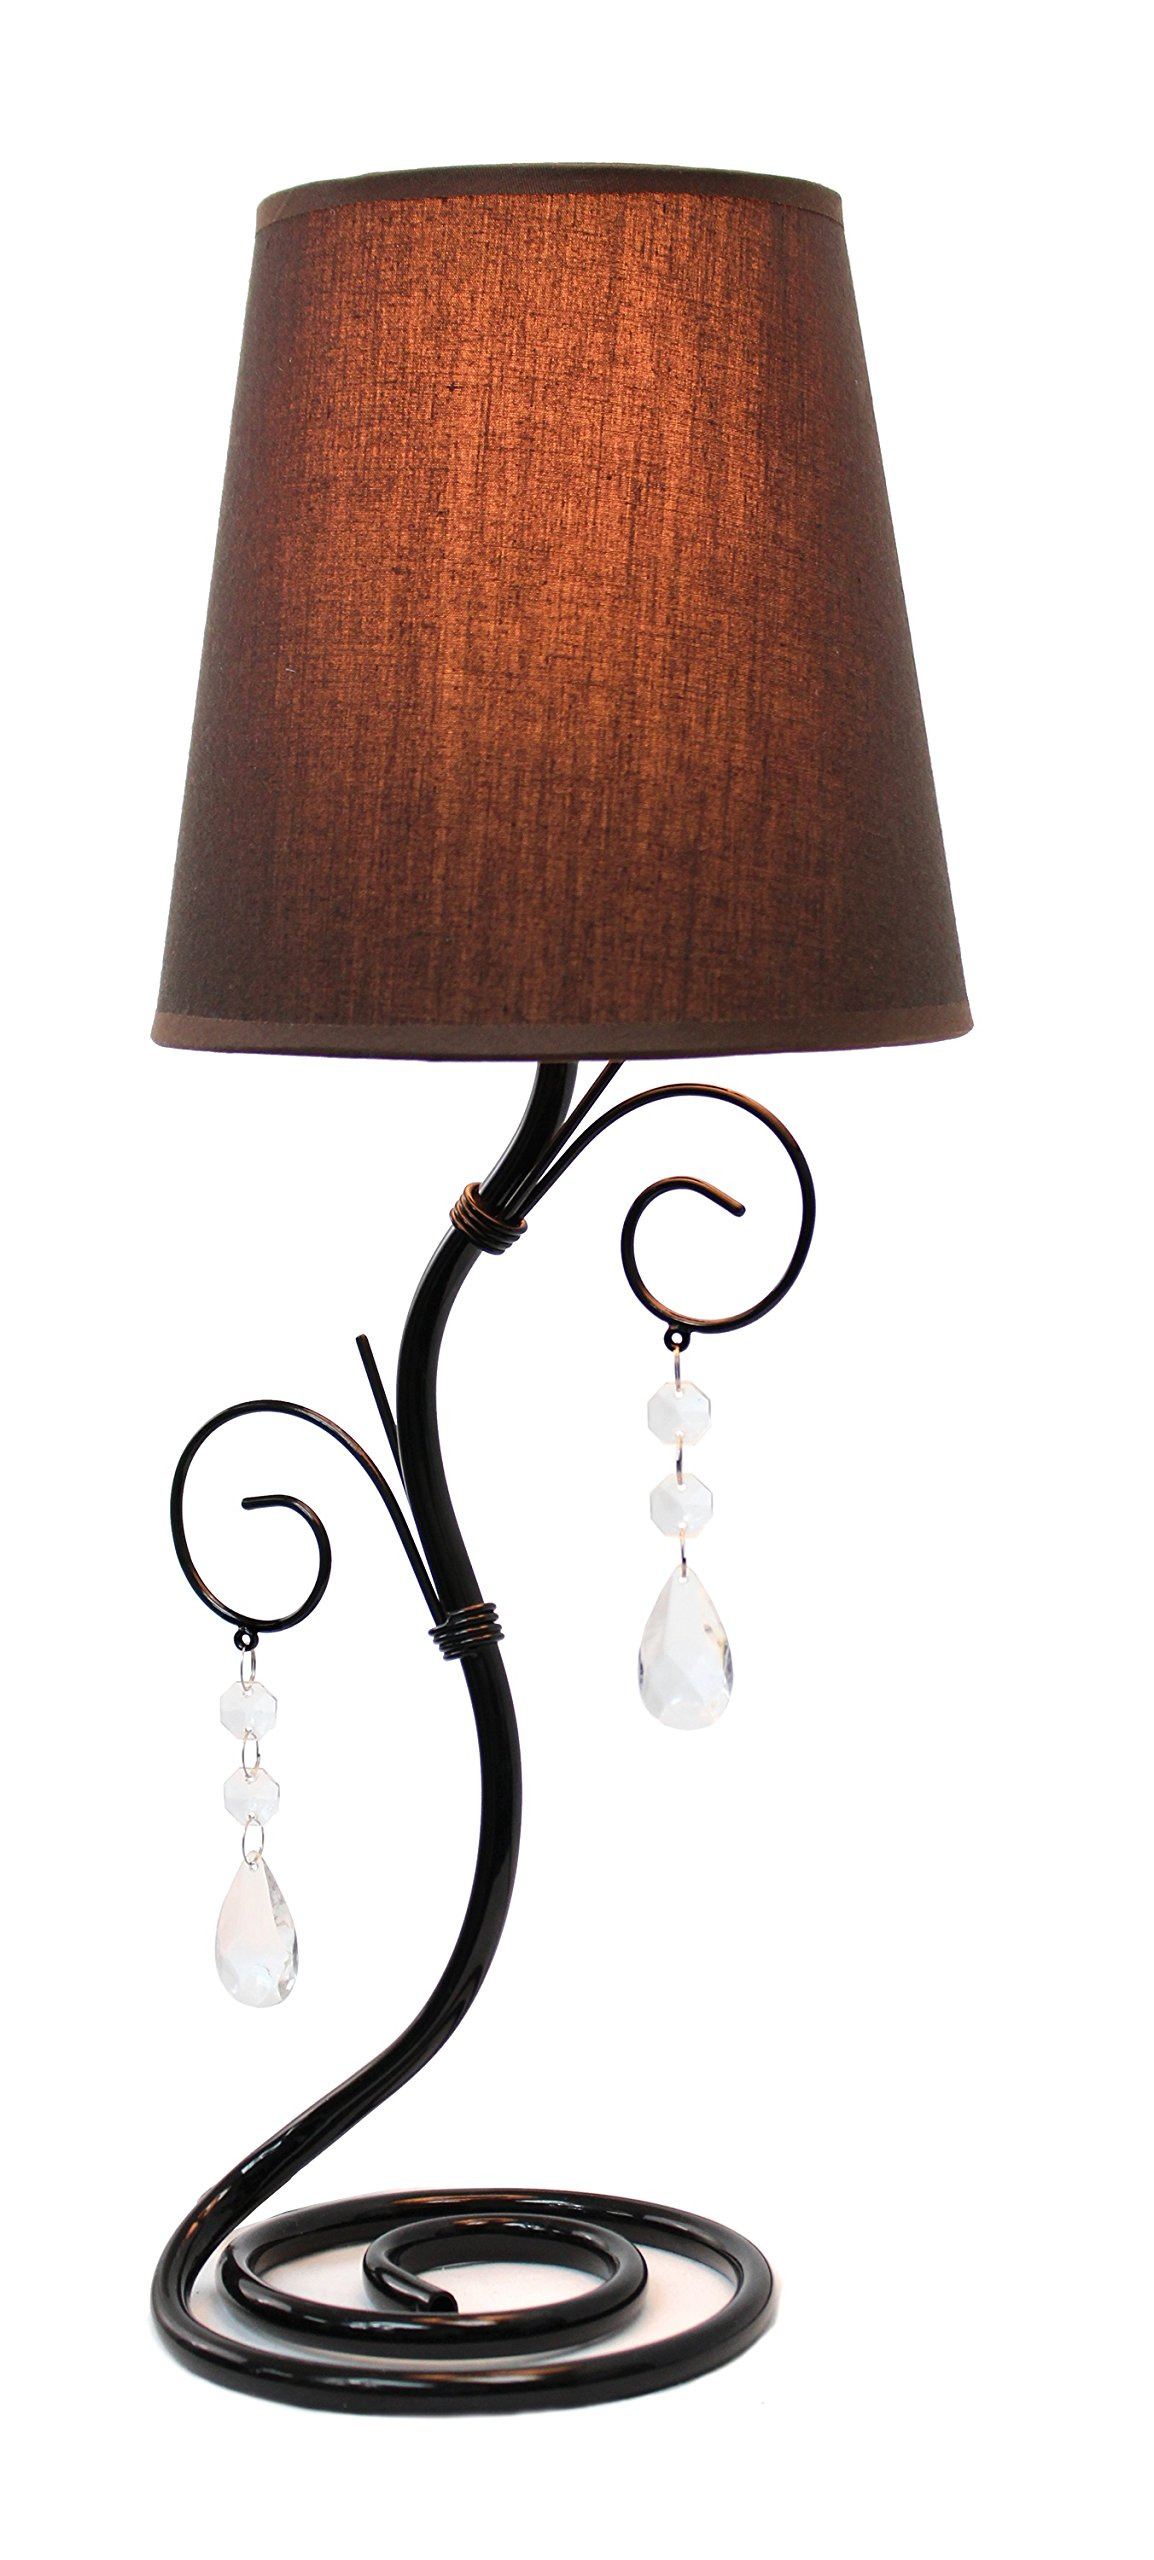 Simple Designs LT2010-BWN Twisted Vine Table Lamp with Fabric Shade and Hanging Beads, Brown